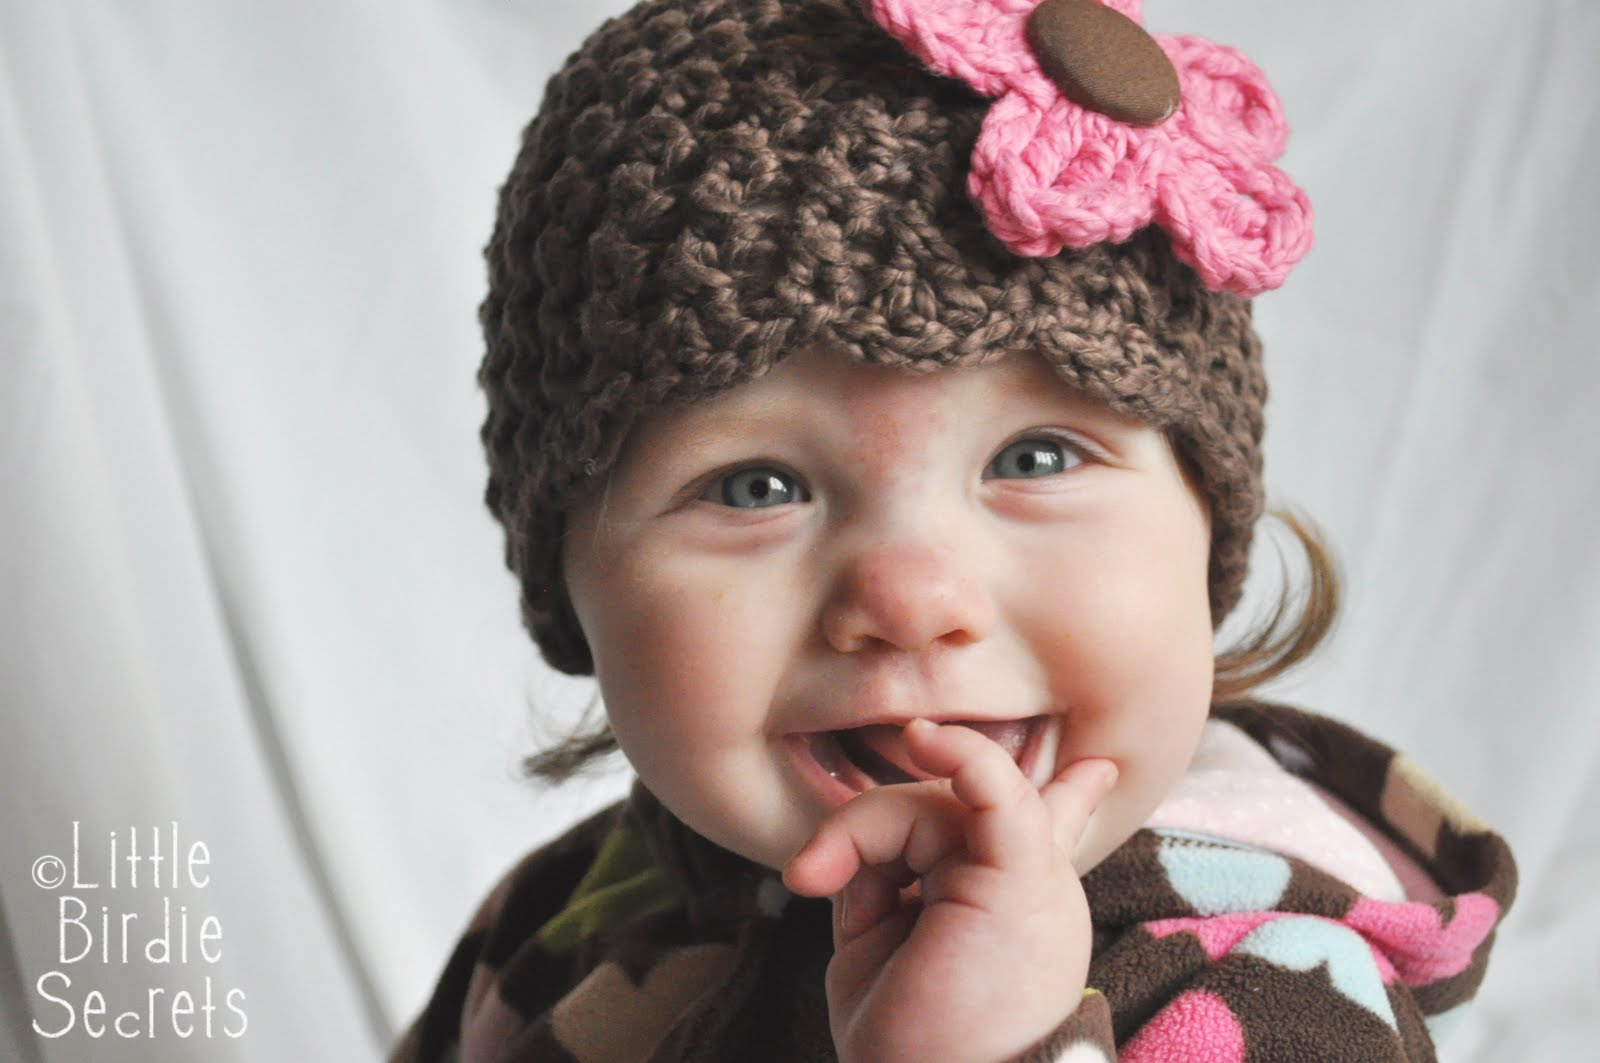 Crocheting Newborn Baby Hat : Easy Crochet Baby Hats - Crochet Club